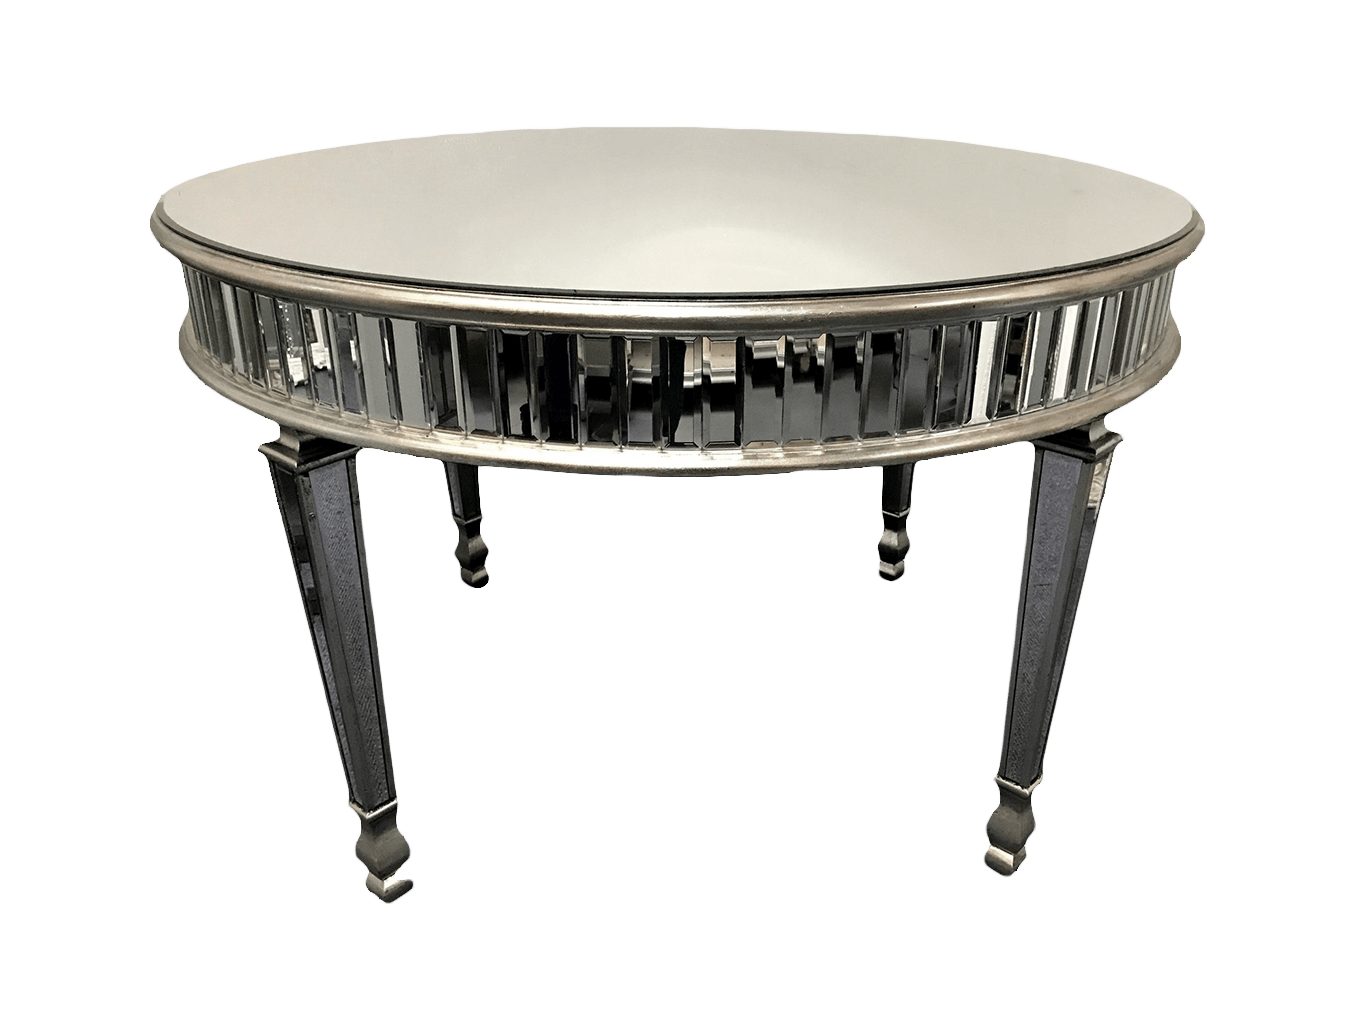 Mirrored dining table, fits 4 seats